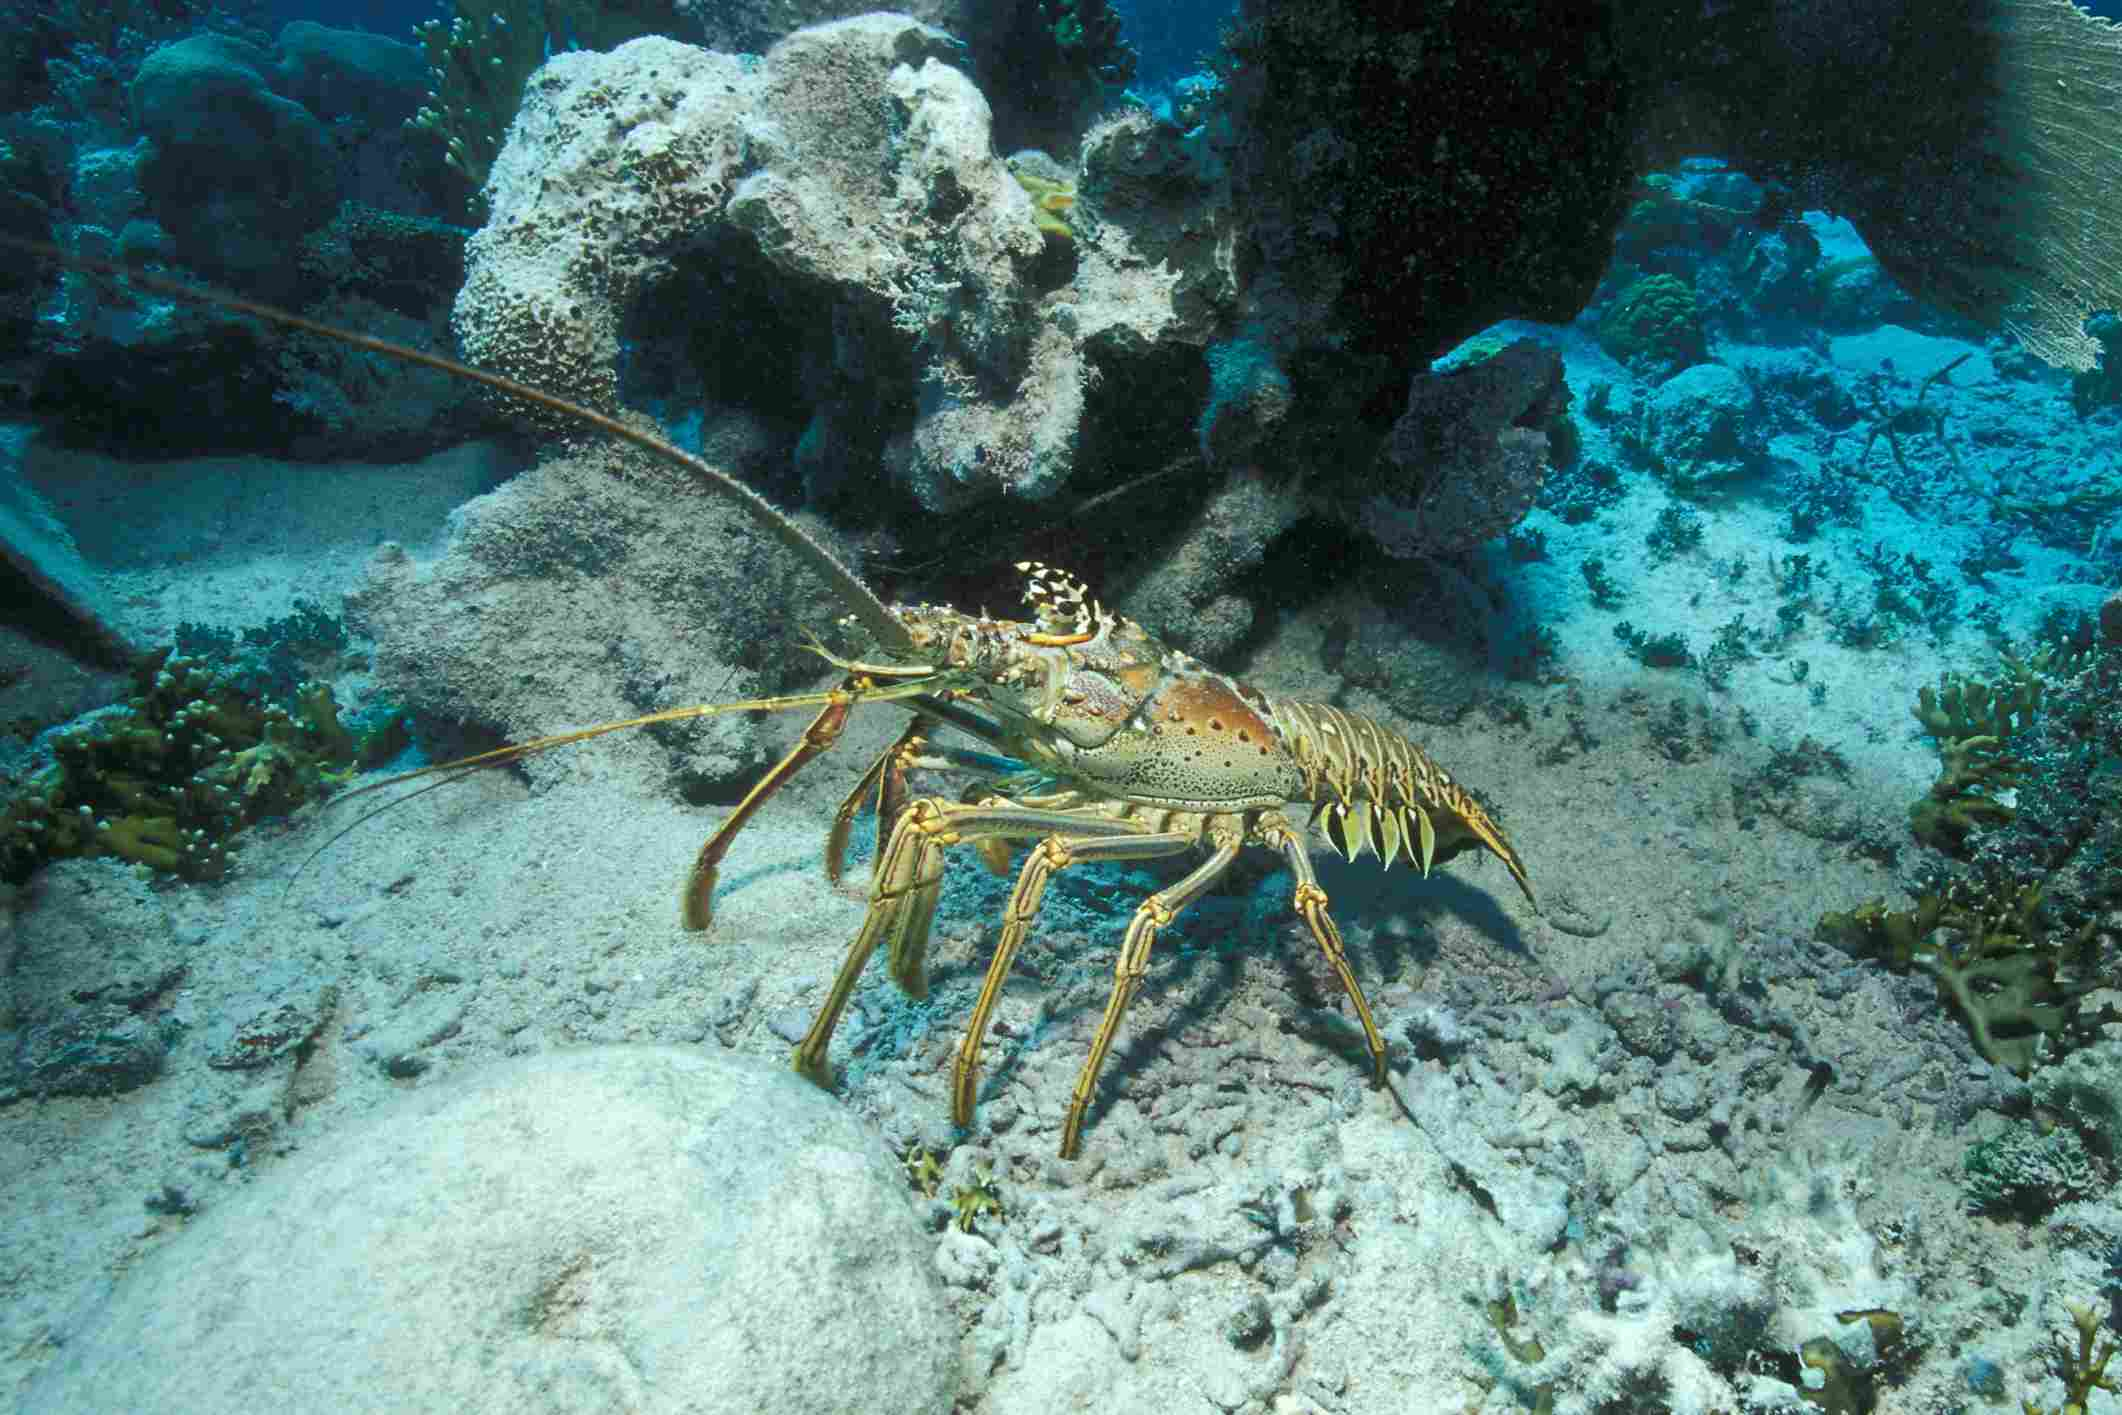 Spiny Lobster / Borut Furlan / WaterFrame / Getty Images